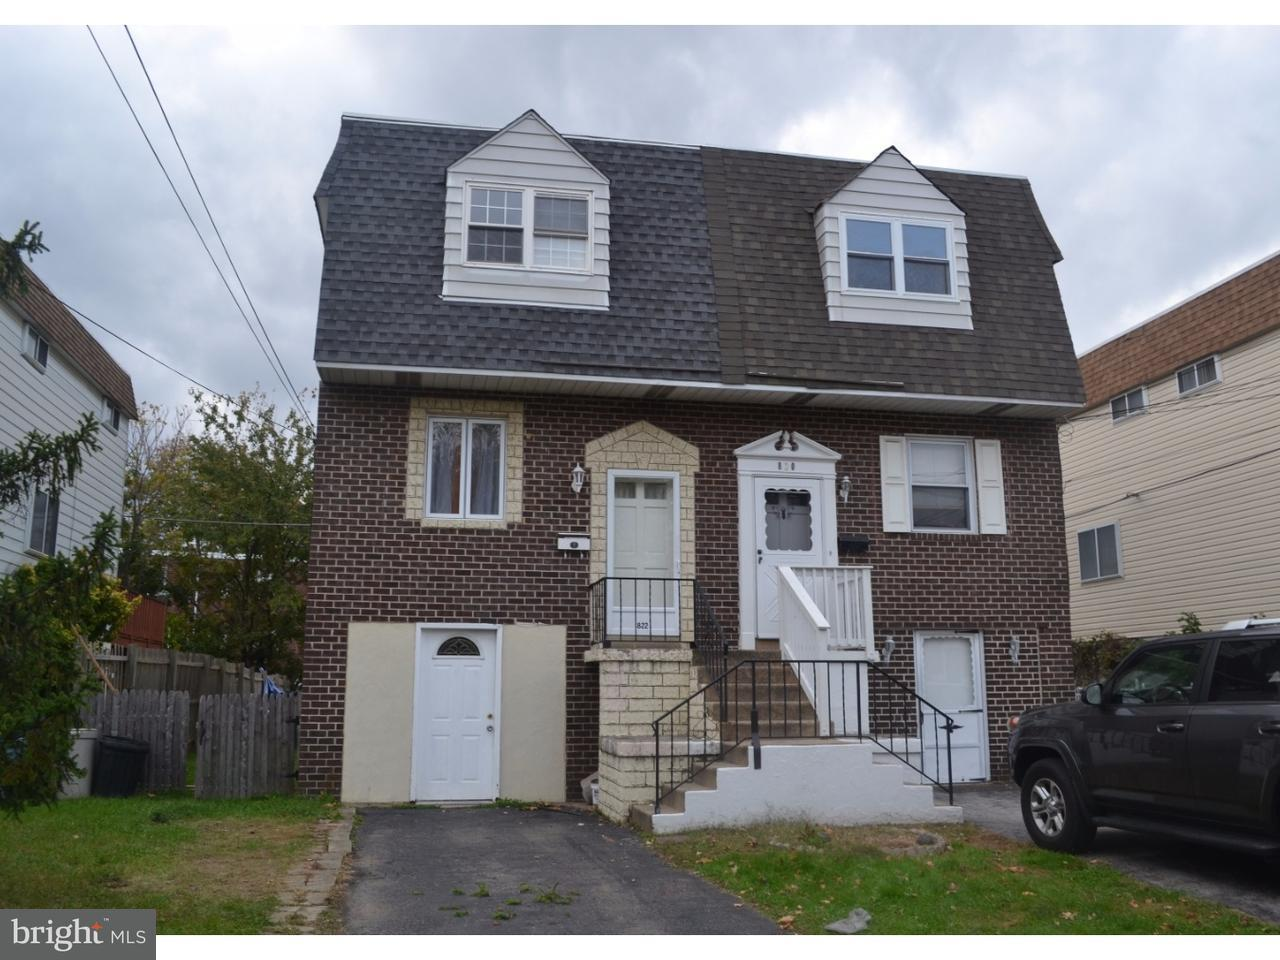 Townhouse for Sale at 822 SCHOOL Lane Folcroft, Pennsylvania 19032 United States